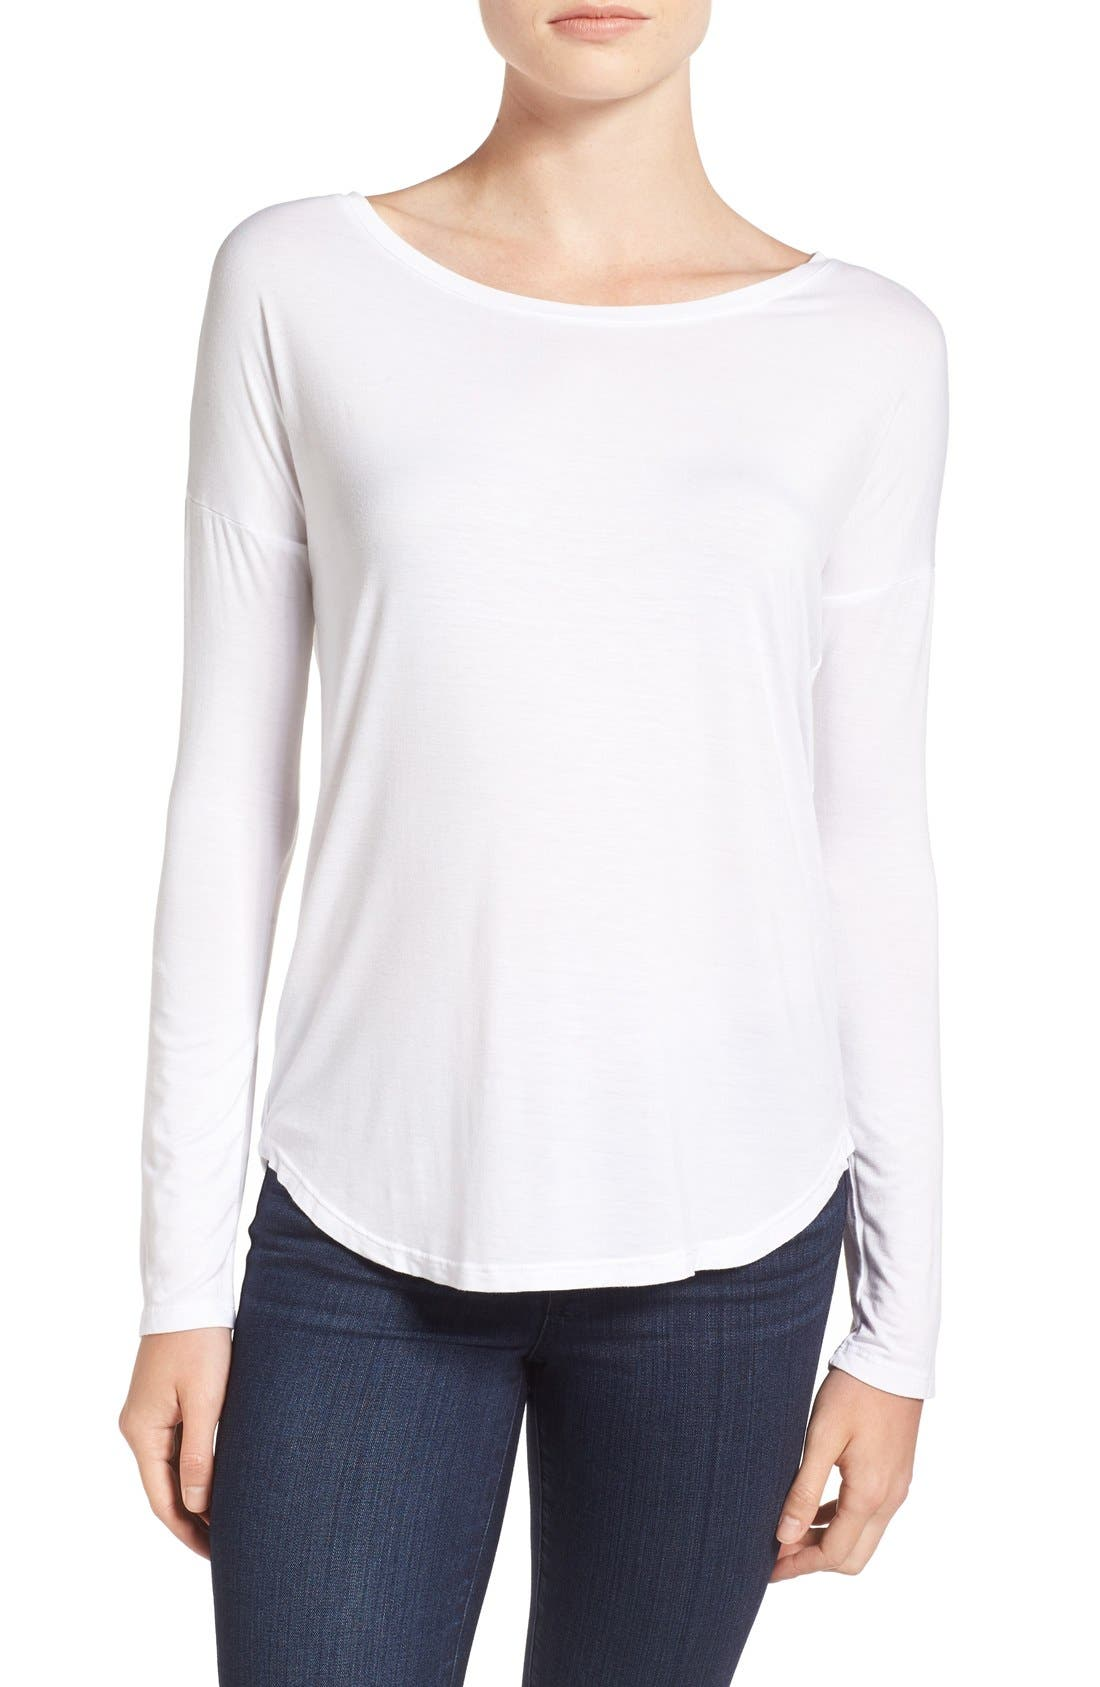 PAIGE 'Bess' Stretch Jersey Boatneck Tee